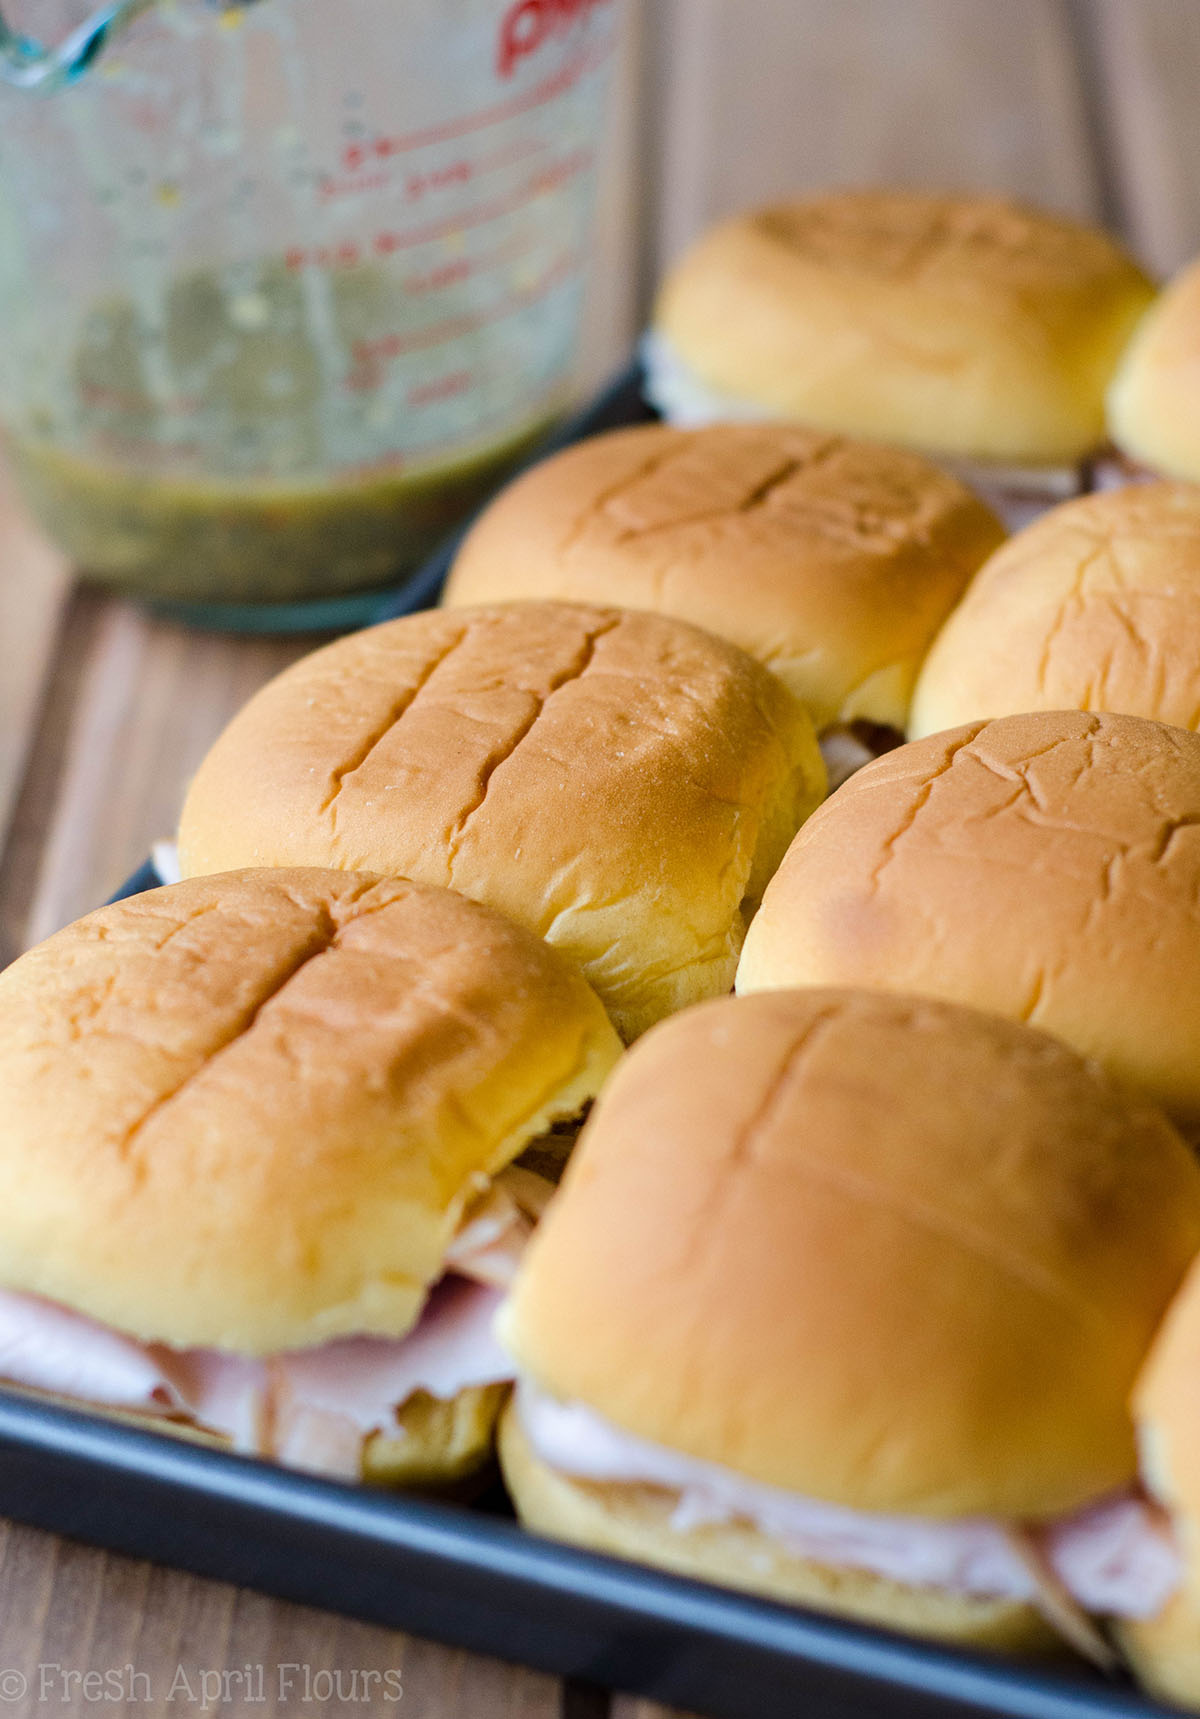 turkey and cheese sliders on a baking sheet ready to bake